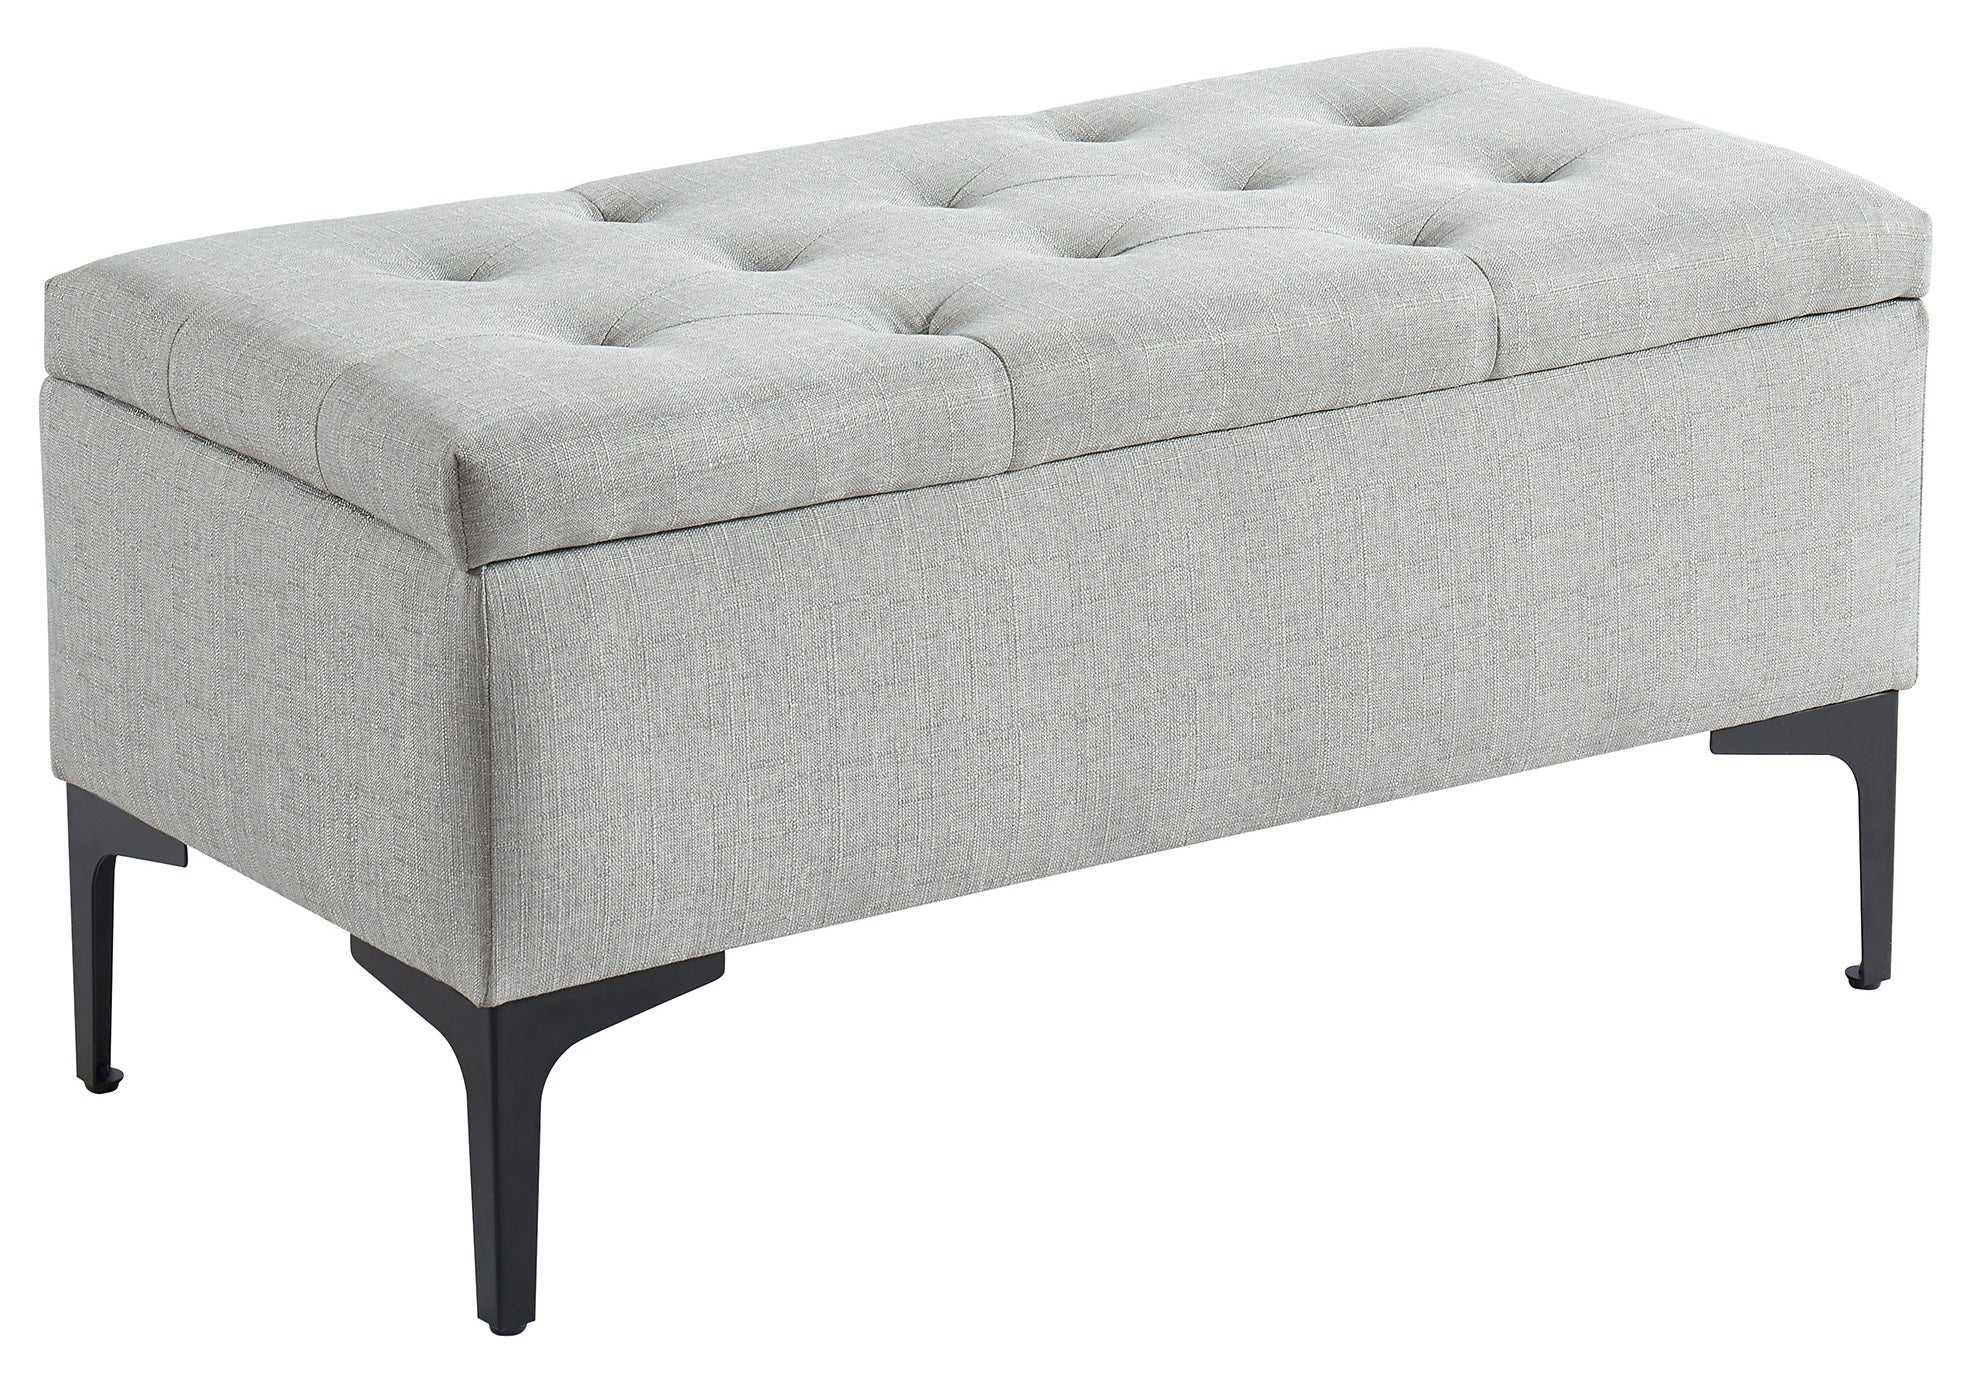 Tyler Rectangular Storage Ottoman - Light Grey